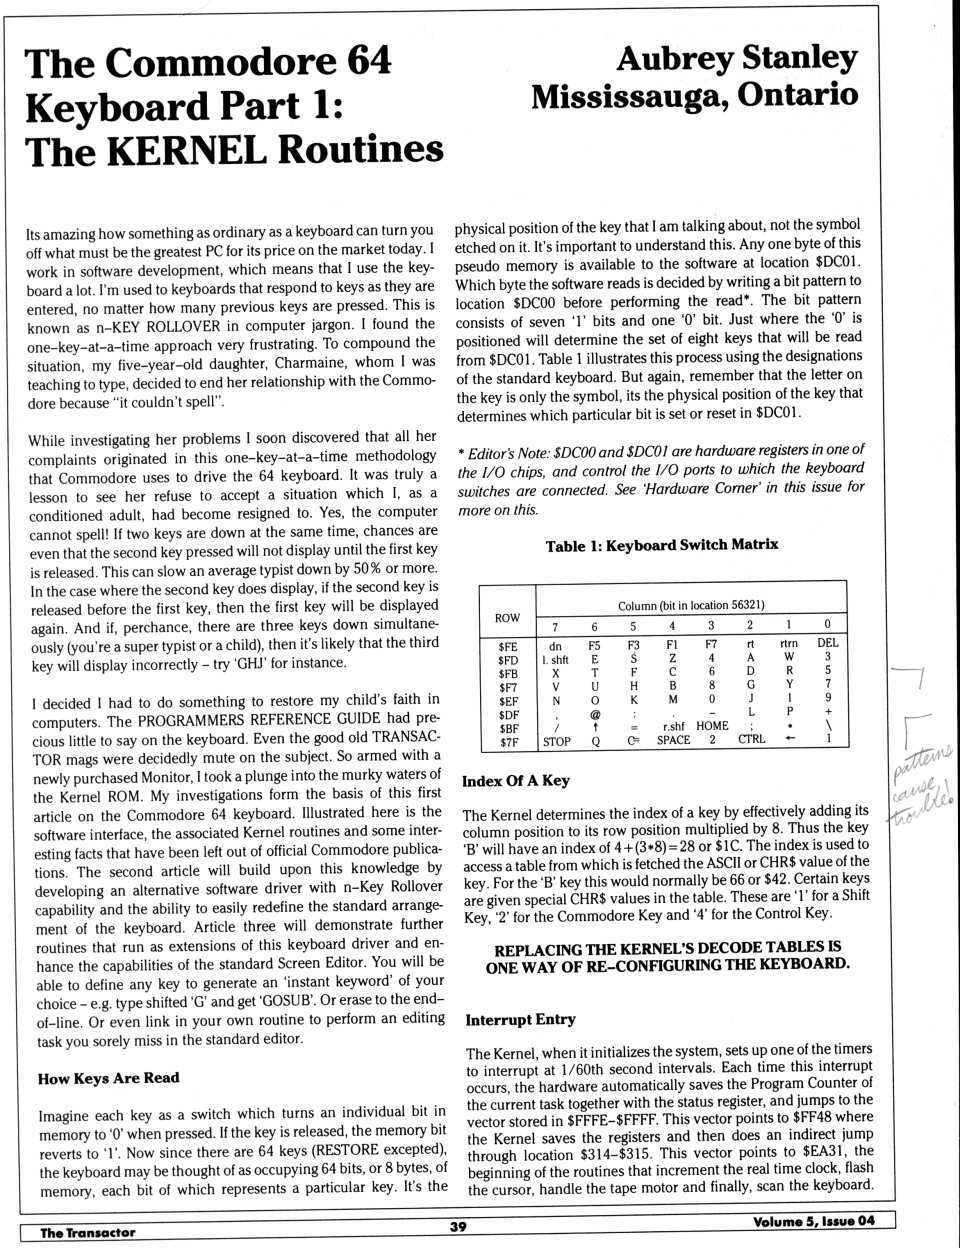 [The Commodore 64 Keyboard, Part 1: The KERNEL Routines (1/5)]